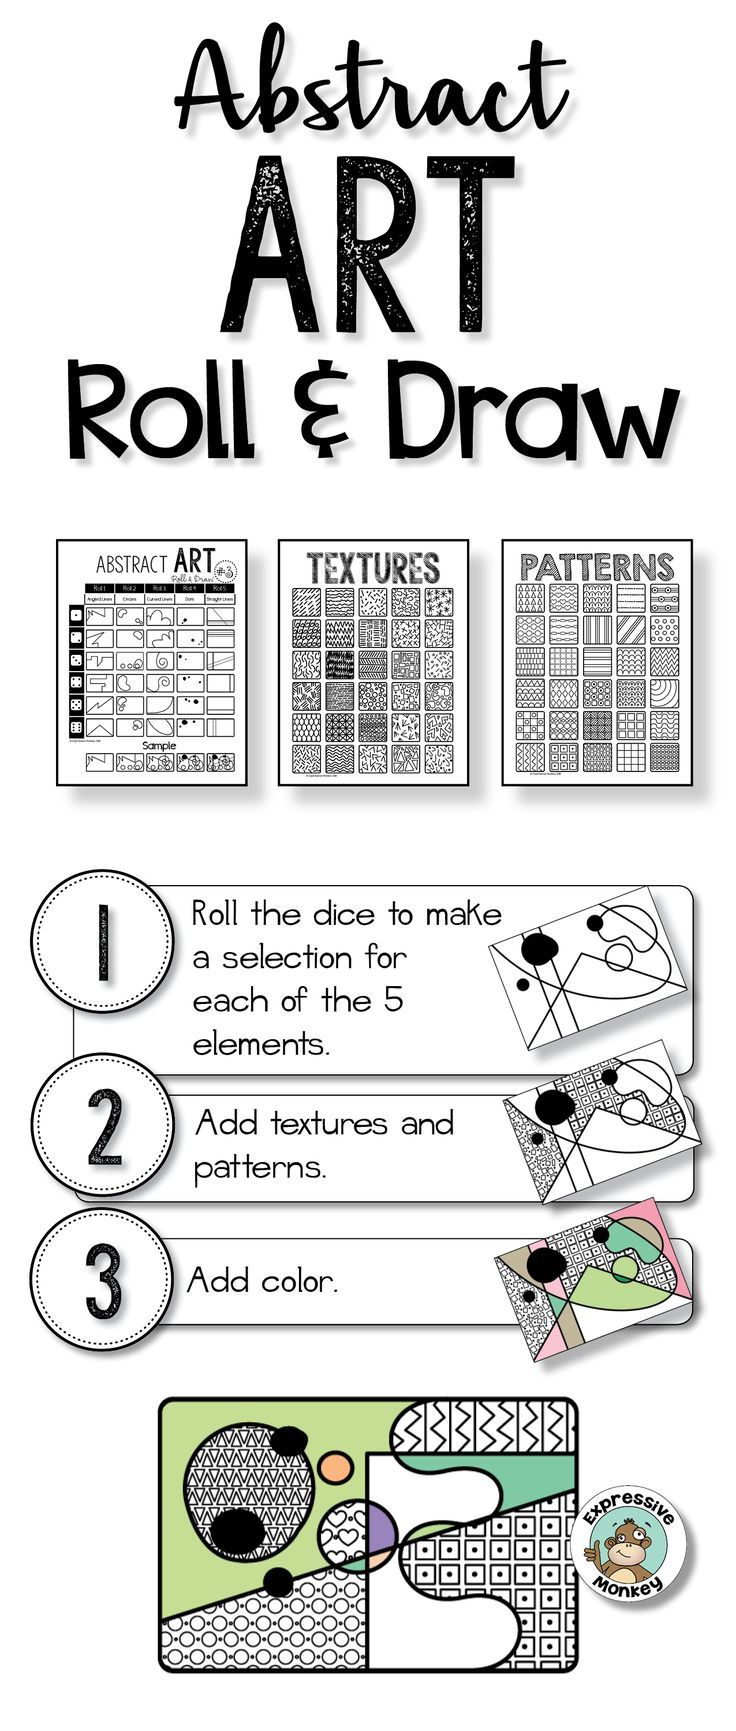 Roll & draw an abstract work of art. This is an easy way to get your abstract art project started.